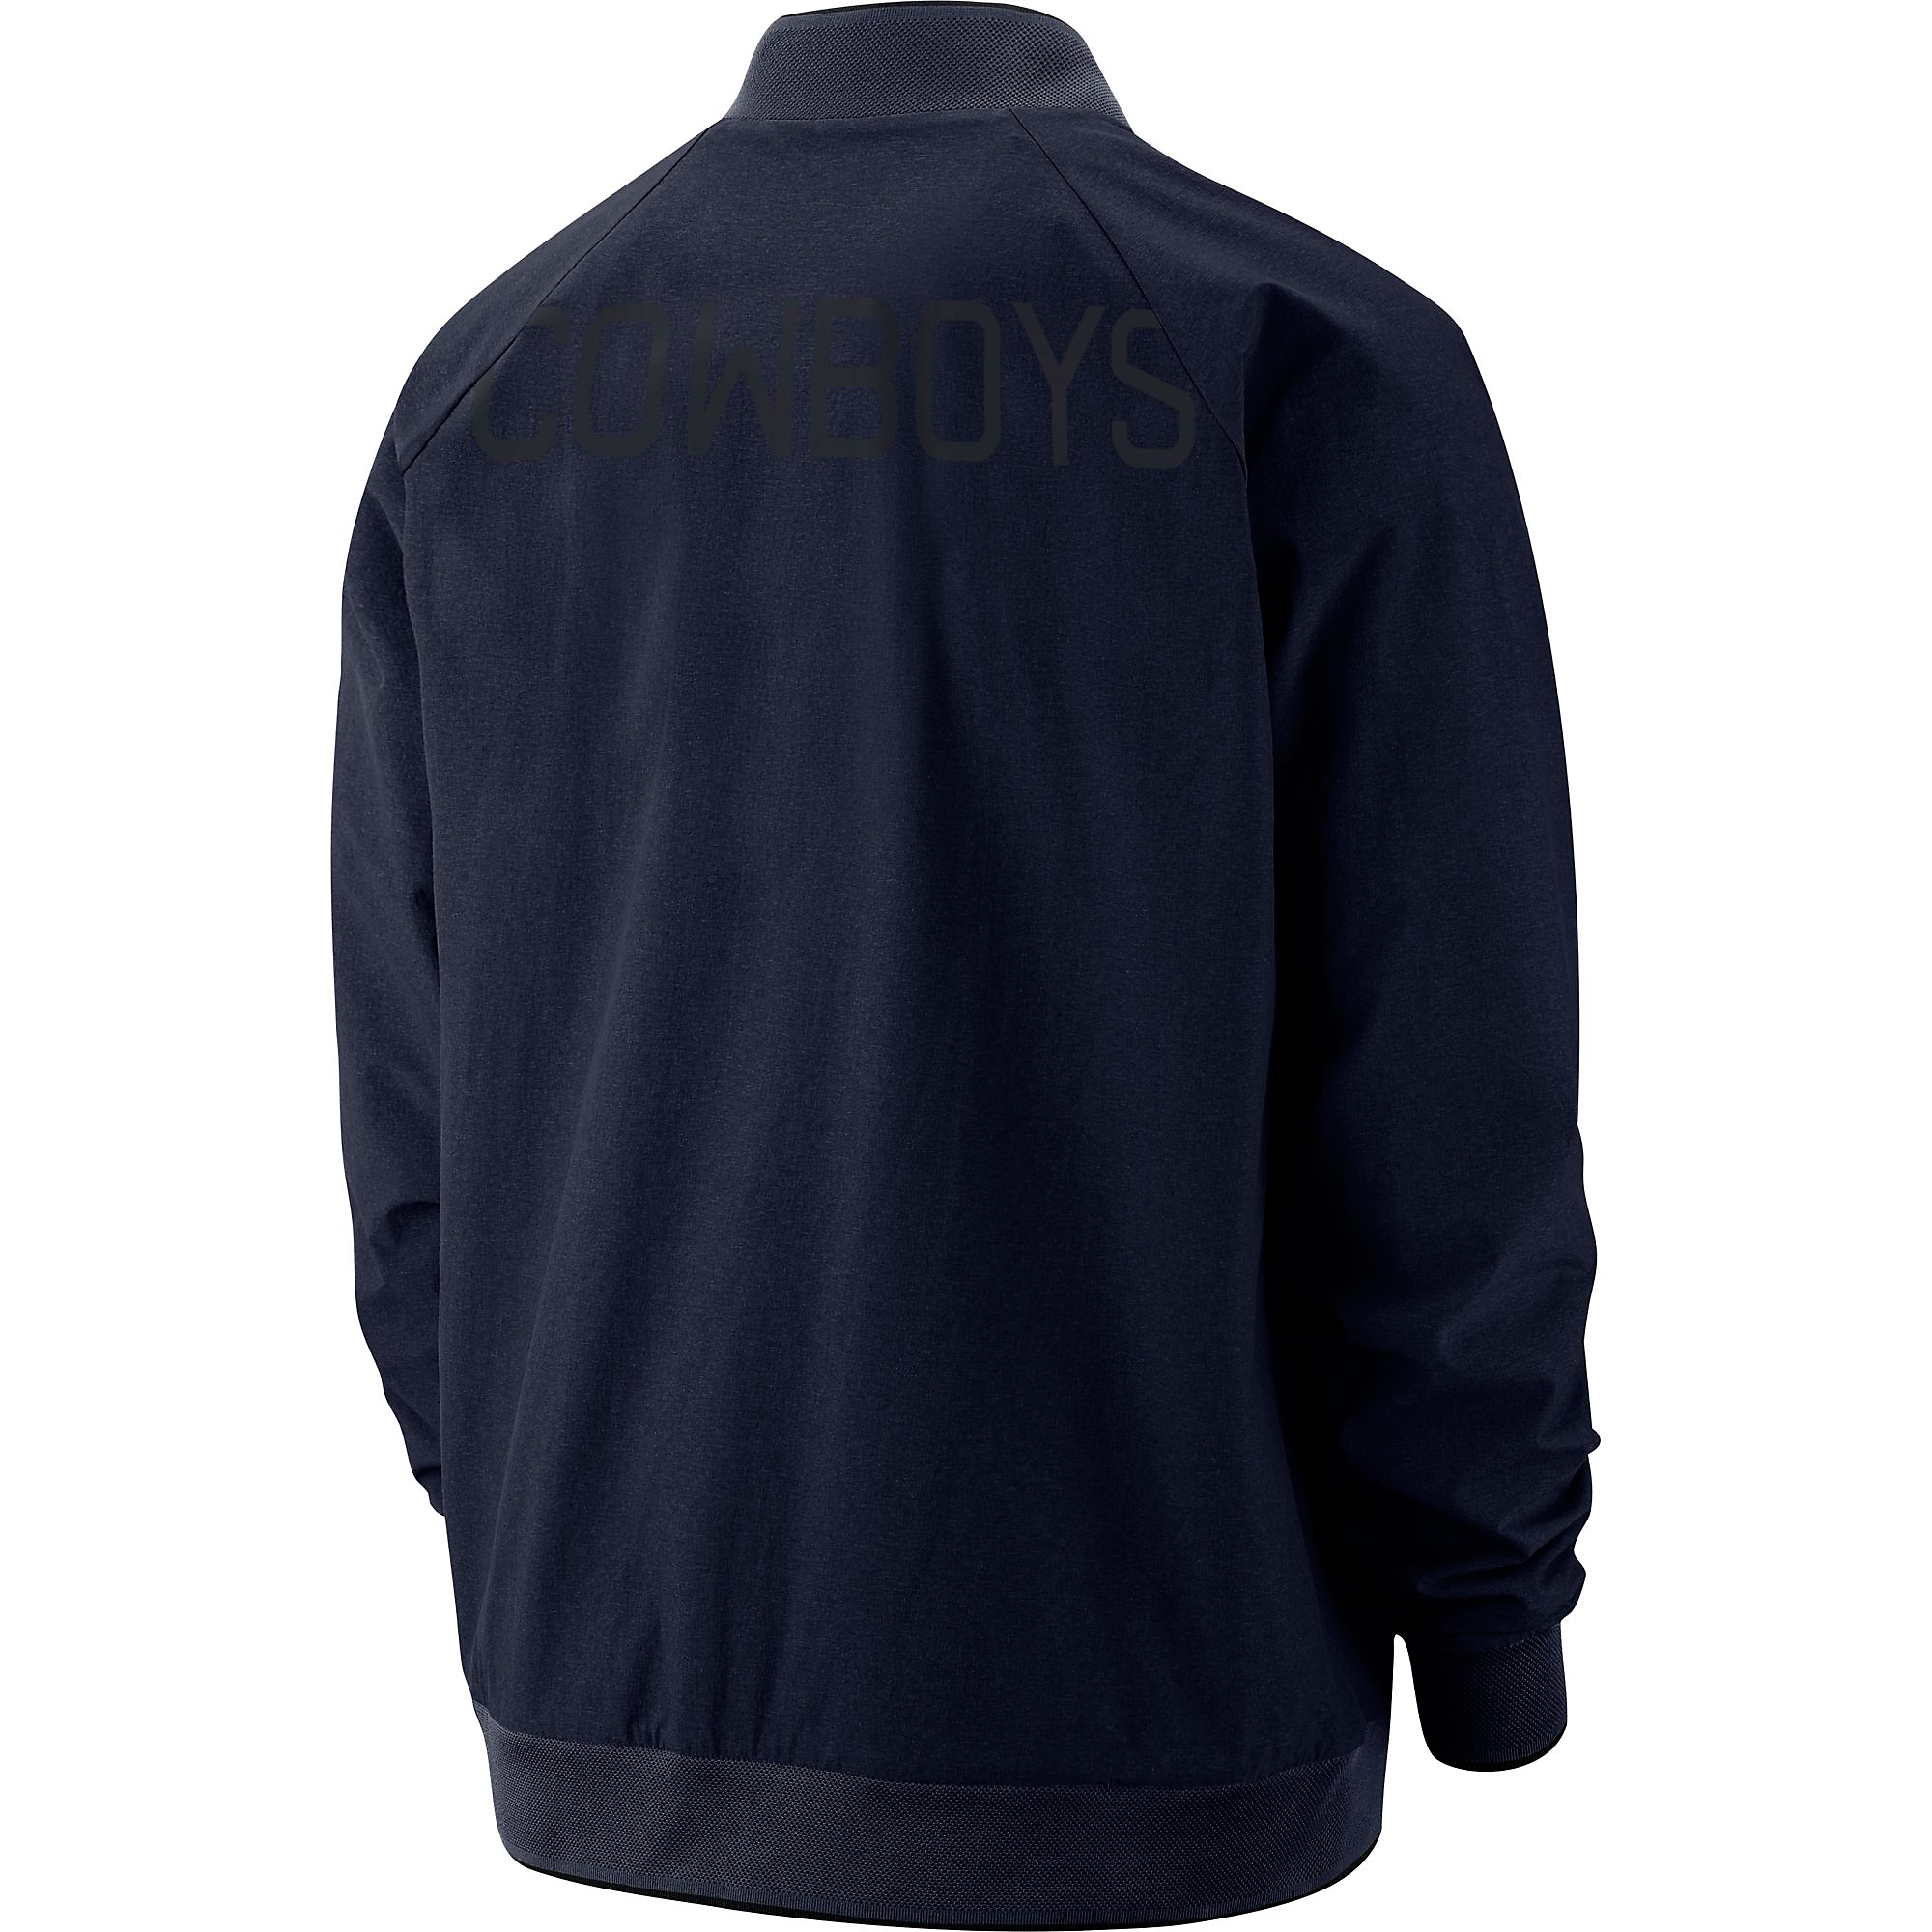 new products 9cdde 6c881 Dallas Cowboys Nike Sideline Away Coaches Jacket | Fans United